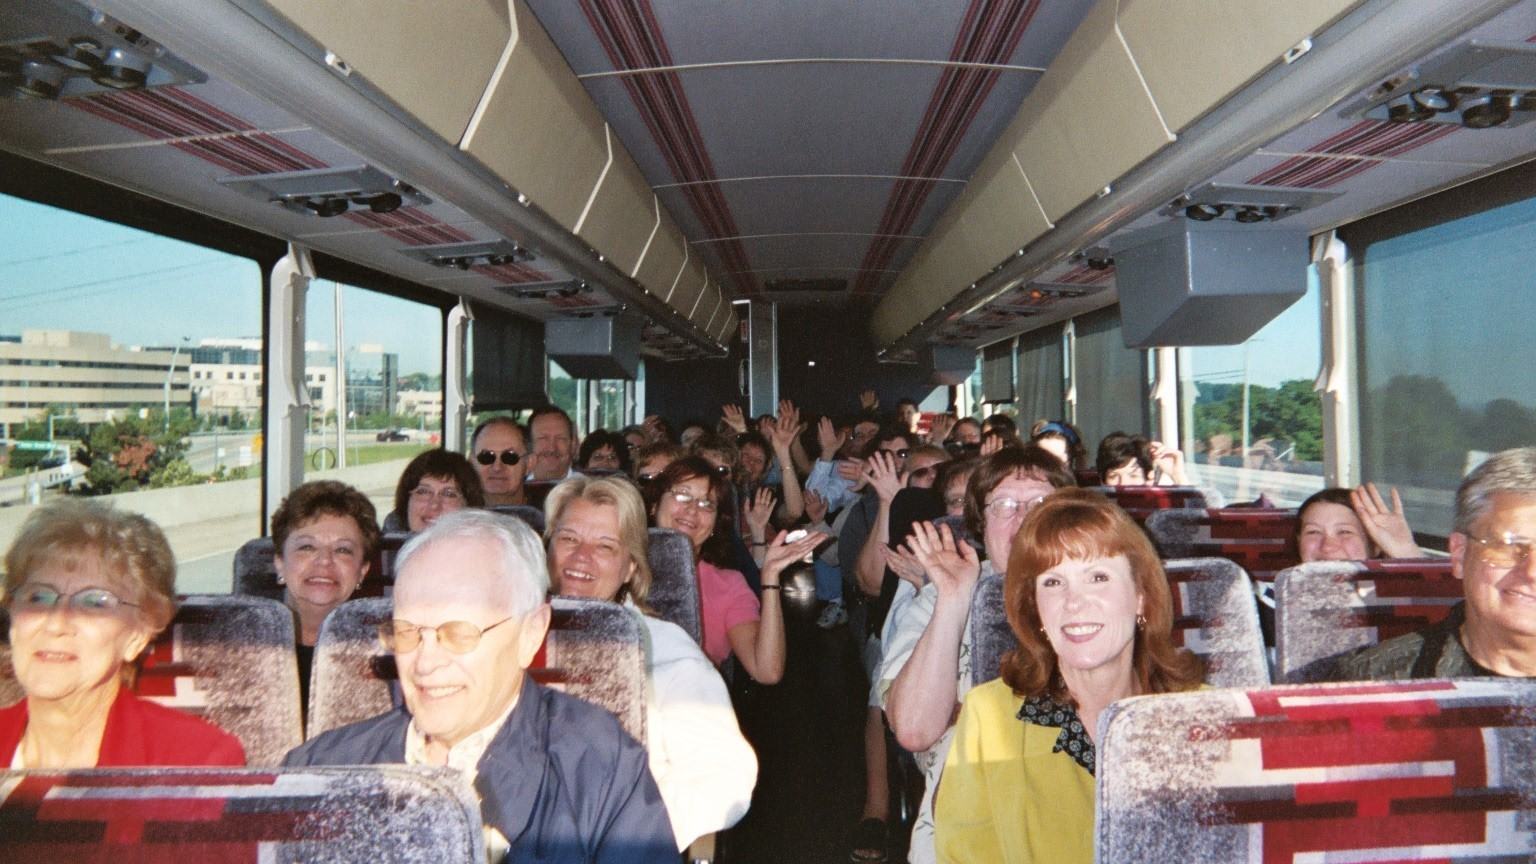 Our happy Bookstore Tourists on the way home from NYC!